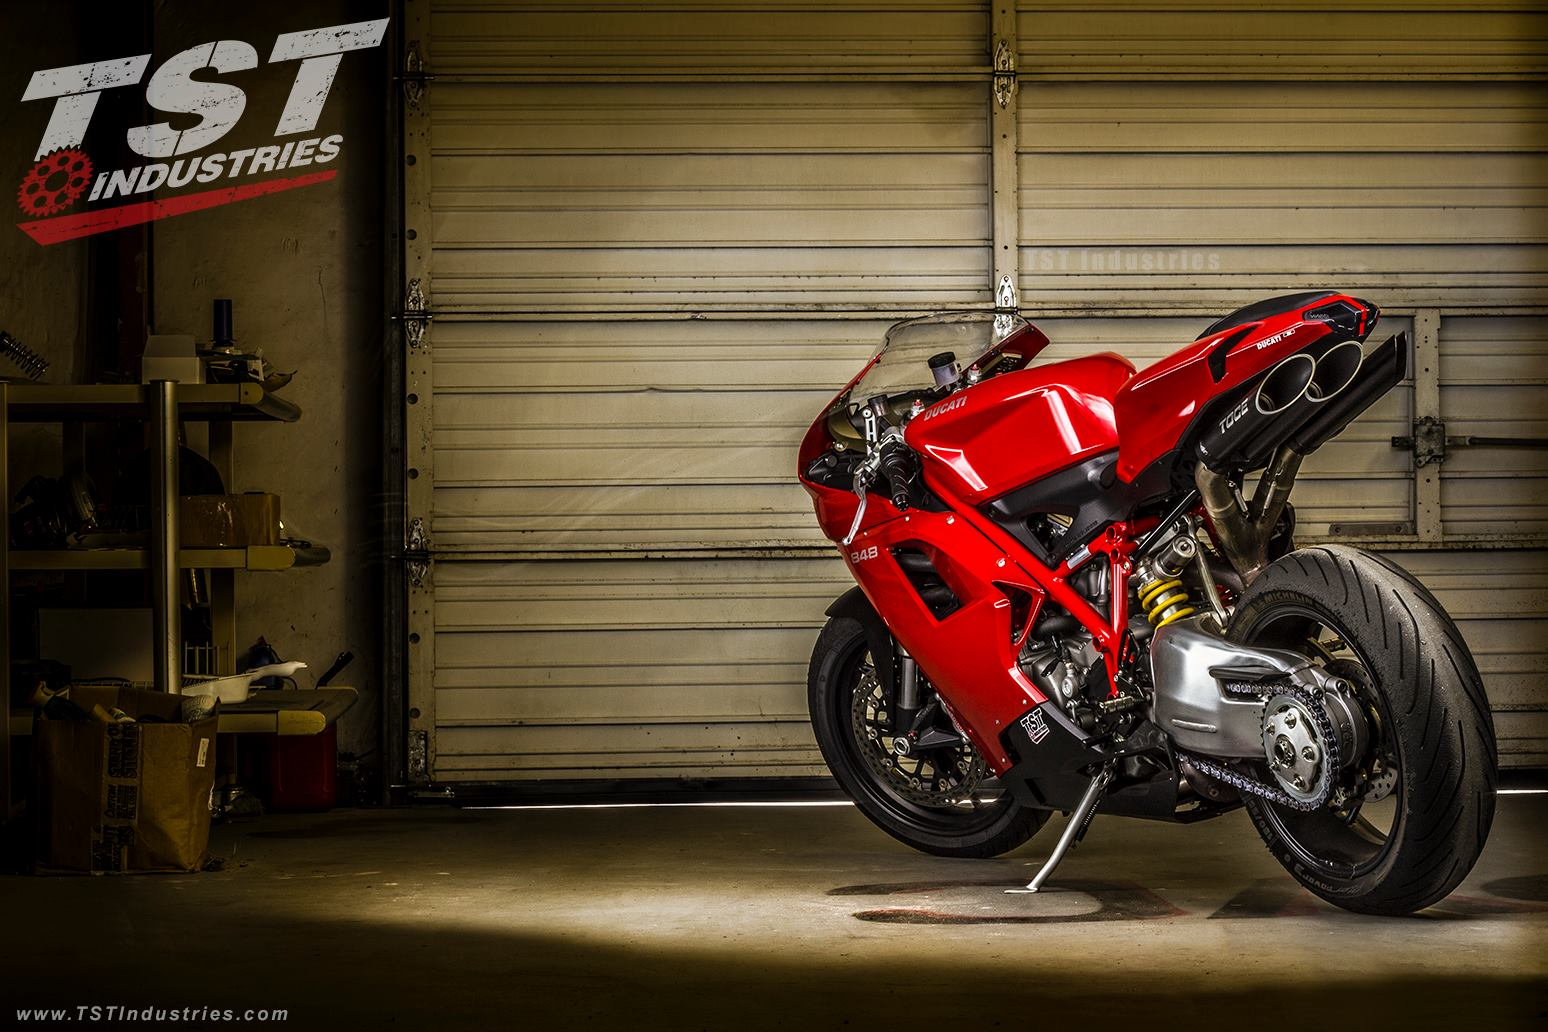 Photoshoot of a red Ducati 848 in the TST Garage with aftermarket parts installed.